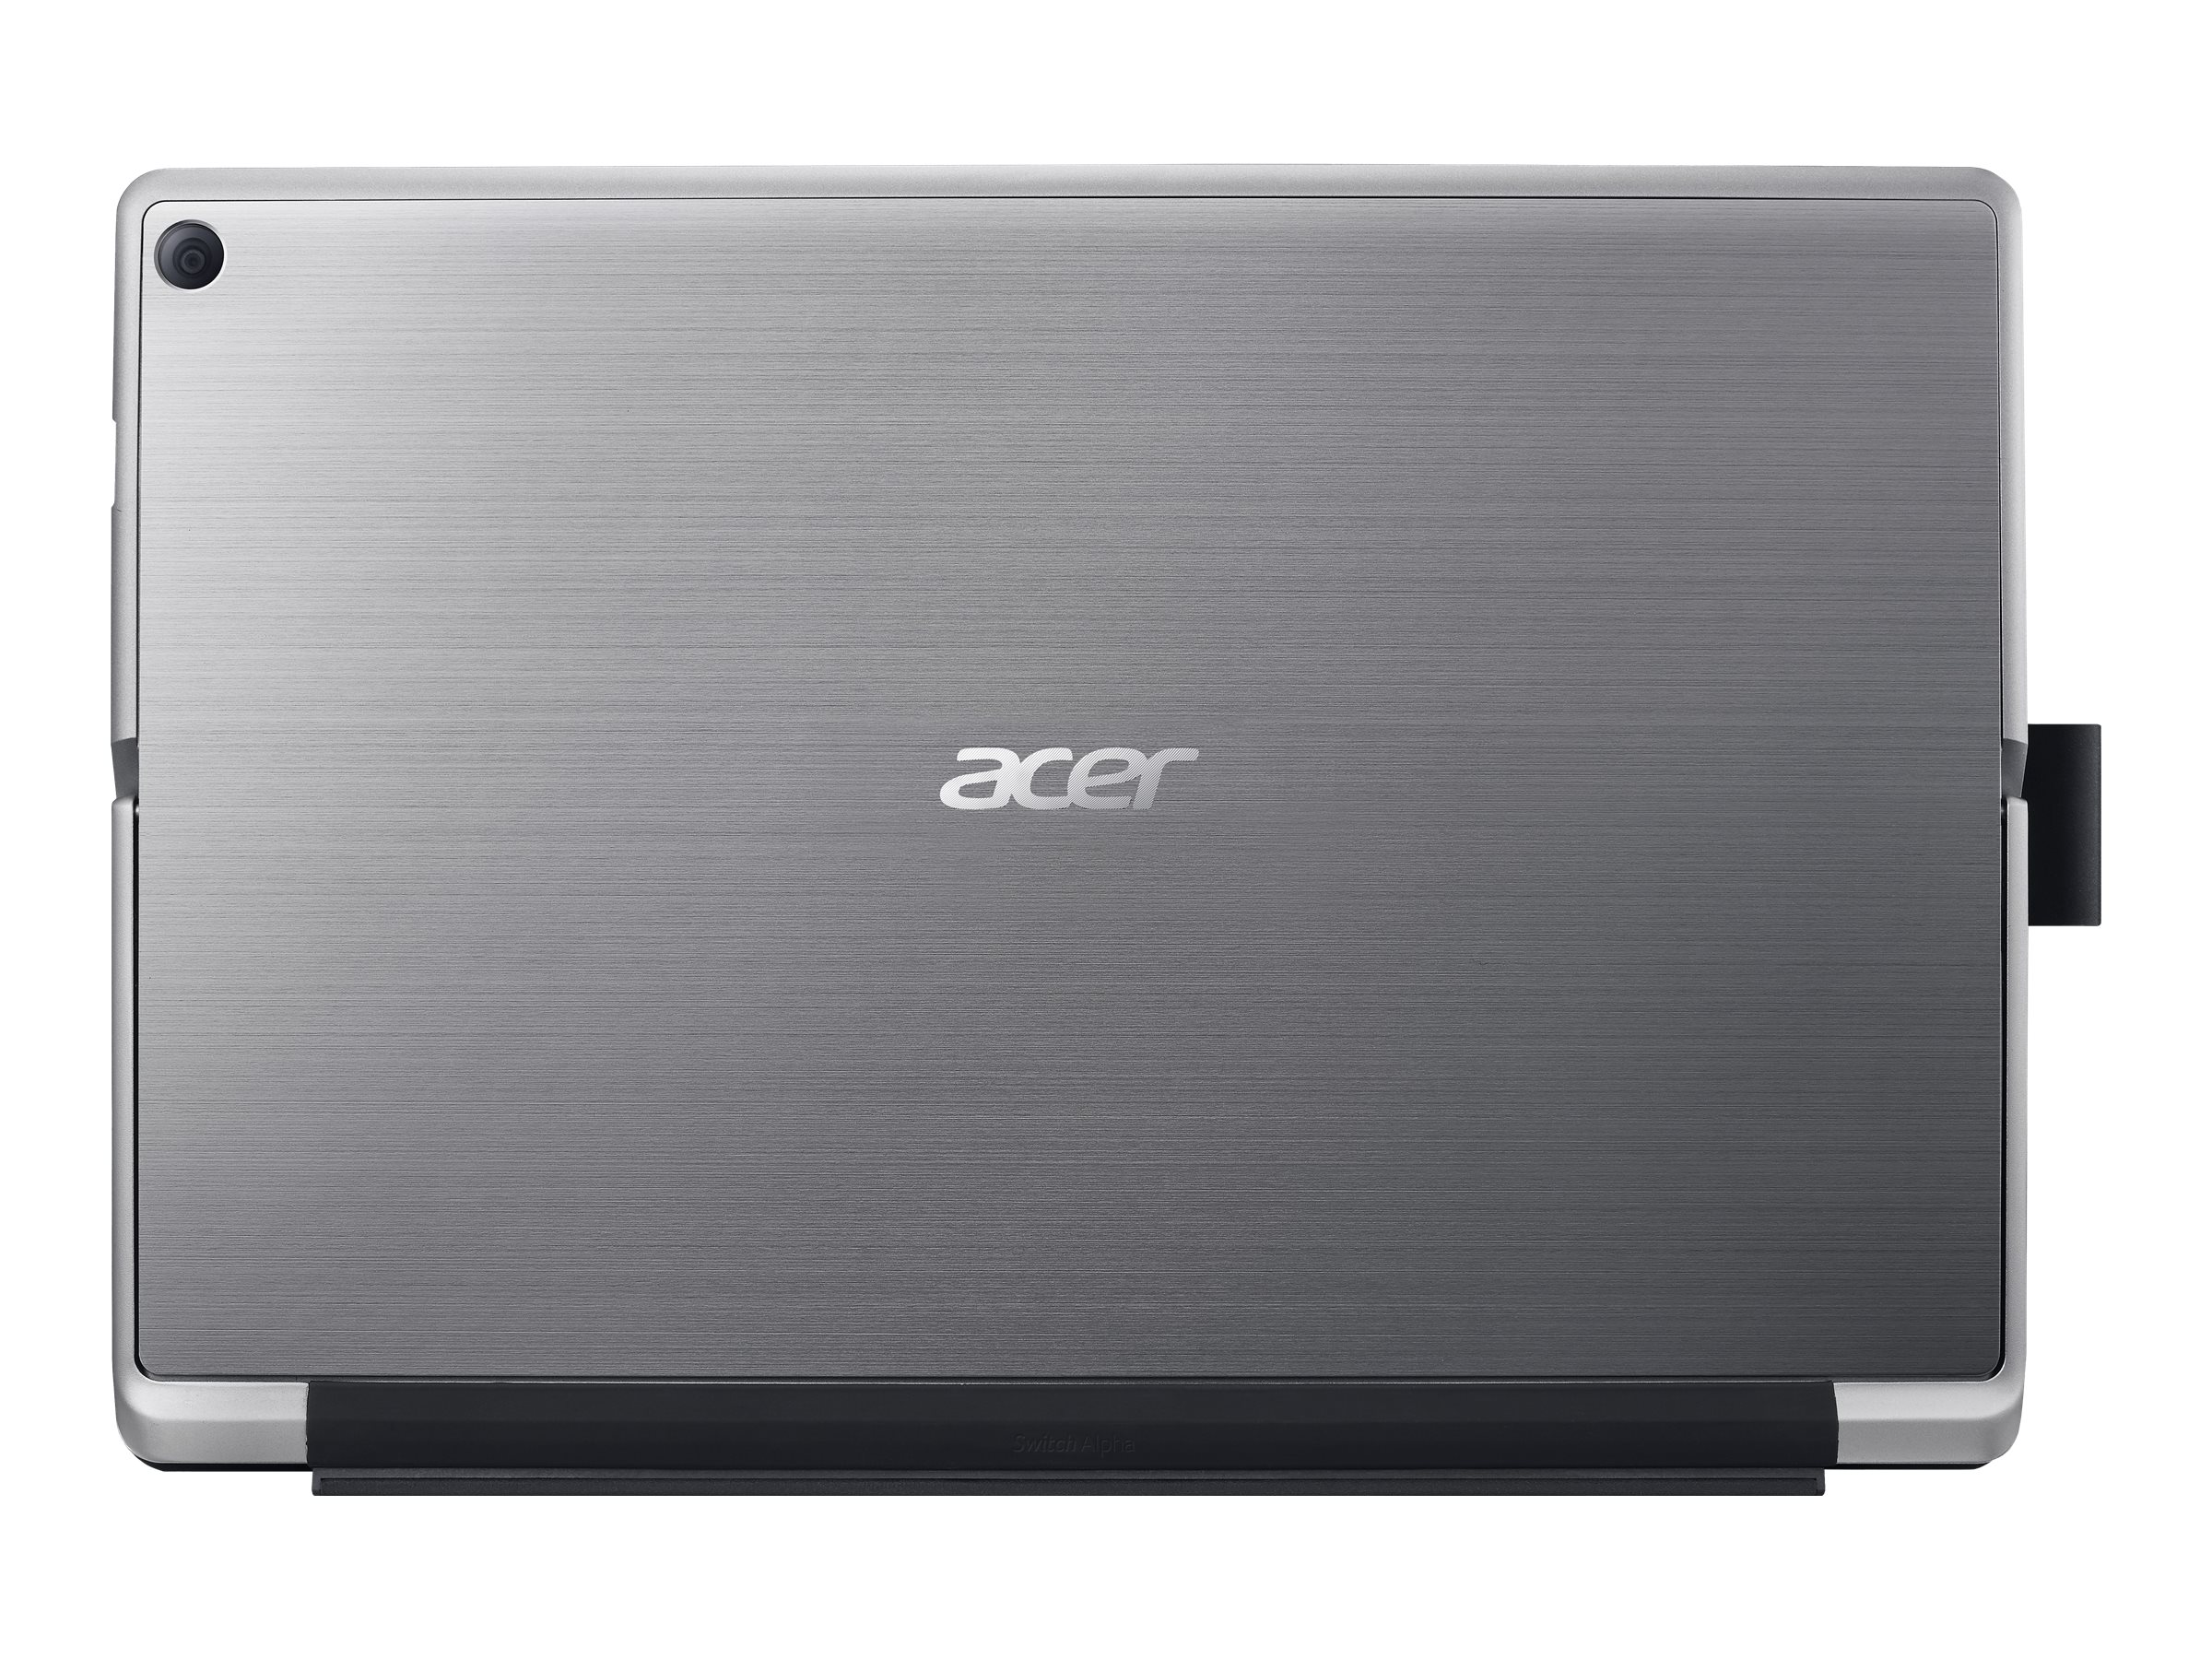 Acer NT.LCDAA.005 Image 6